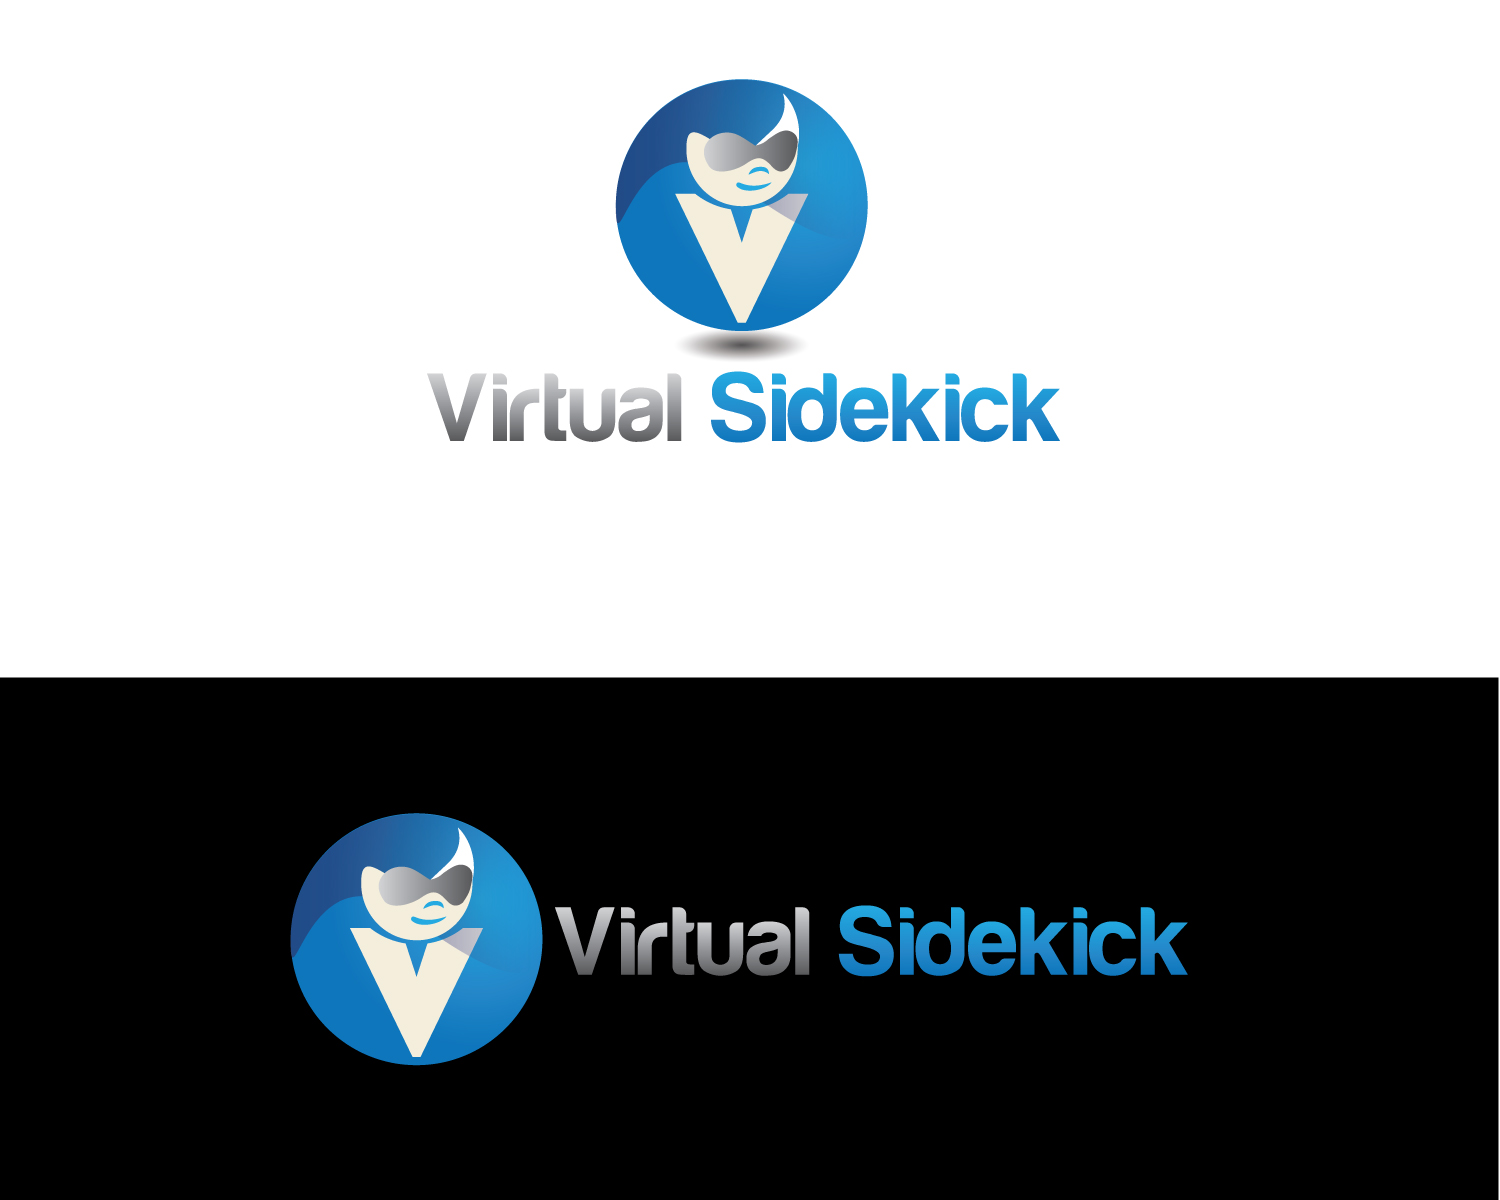 Logo Design by Jagdeep Singh - Entry No. 107 in the Logo Design Contest Fun Logo Design for Virtual Sidekick.